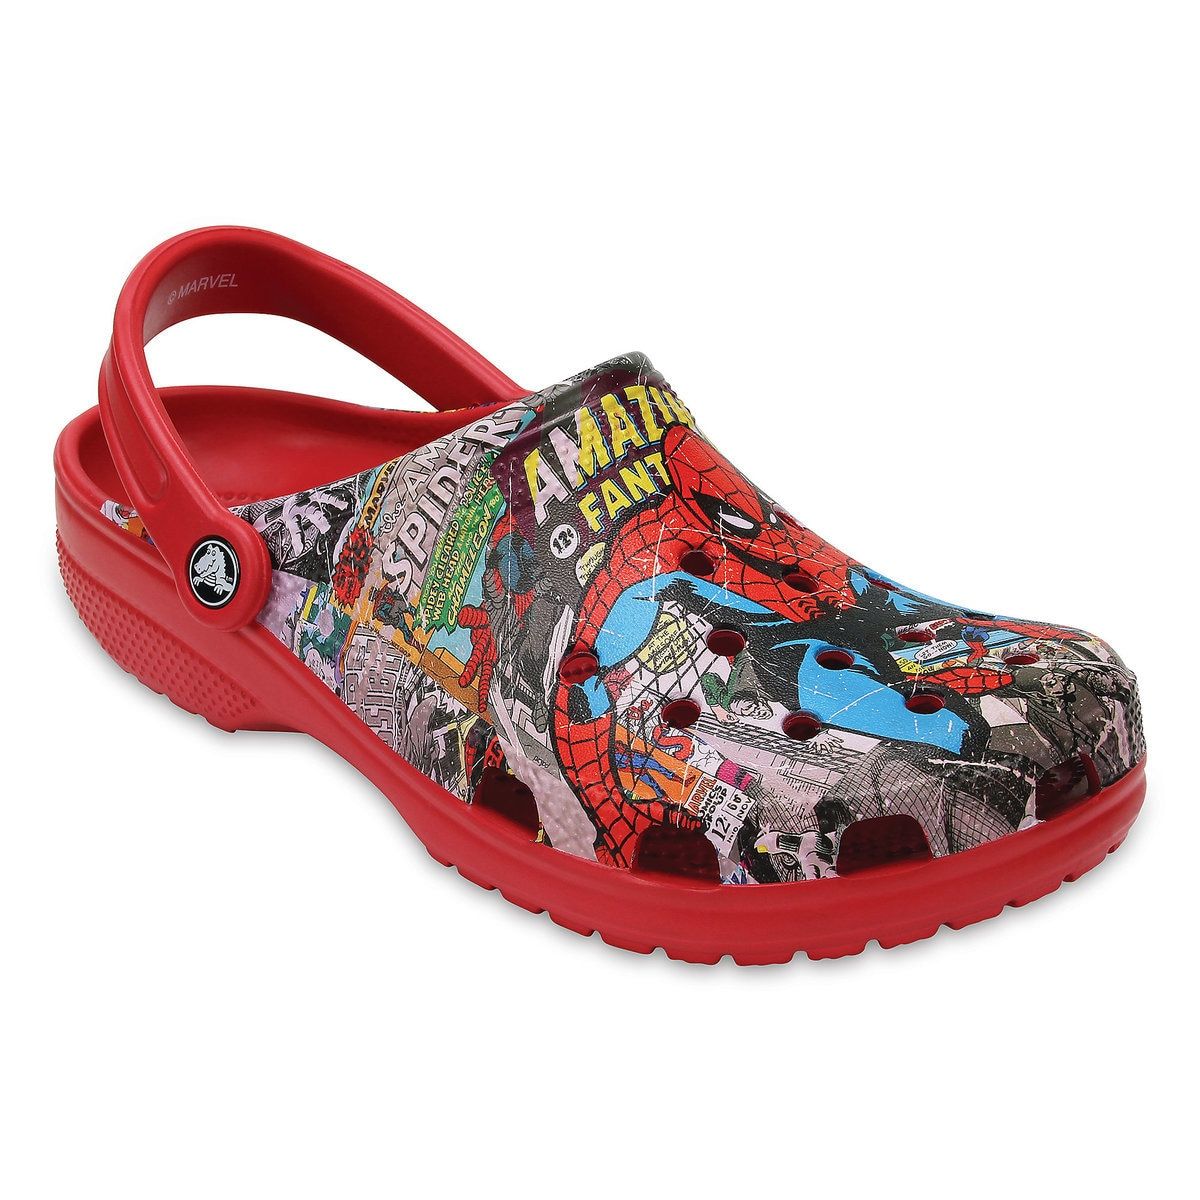 cfa34fbad Product Image of Spider-Man Crocs™ Clogs for Adults   1